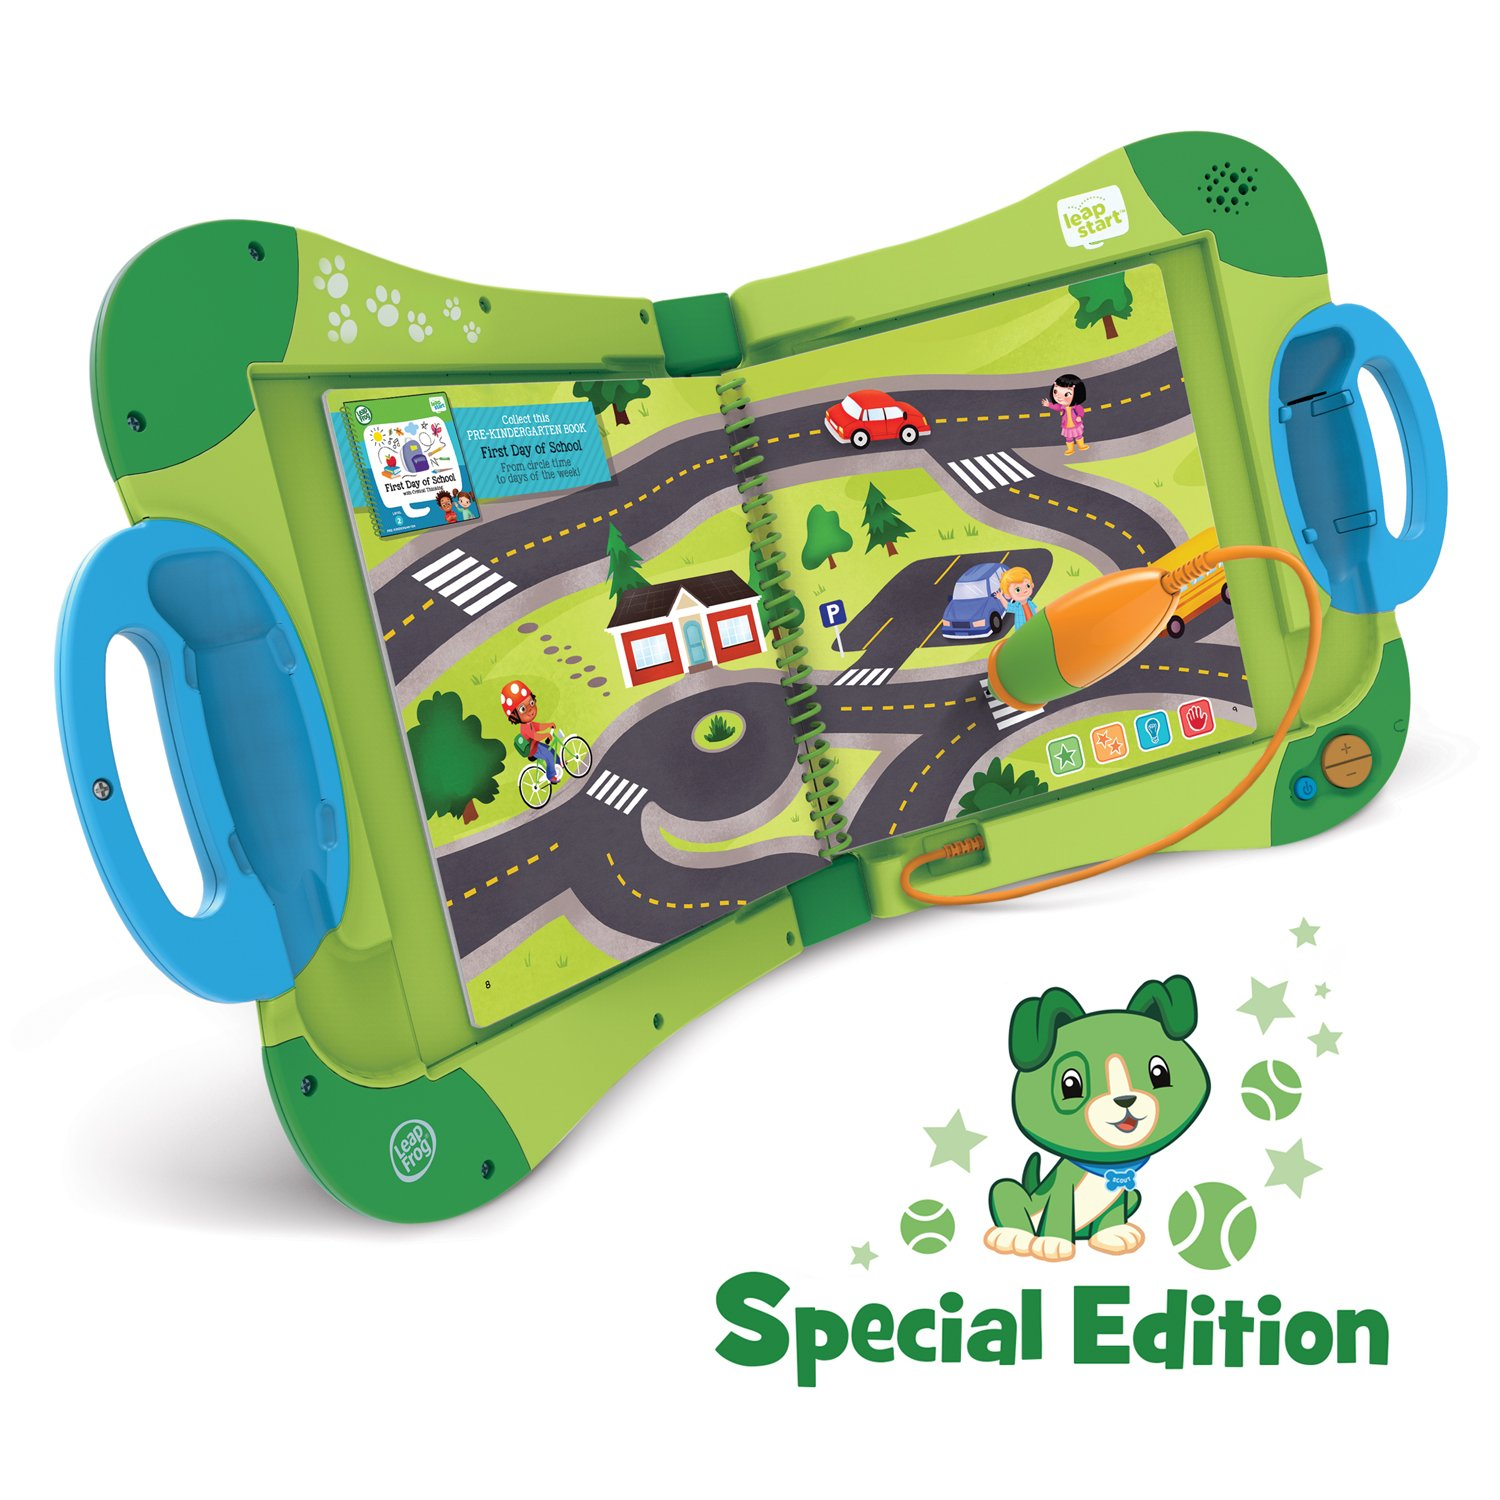 LeapFrog LeapStart Interactive Learning System Preschool and Pre-Kindergarten My Pal Scout by LeapFrog (Image #1)